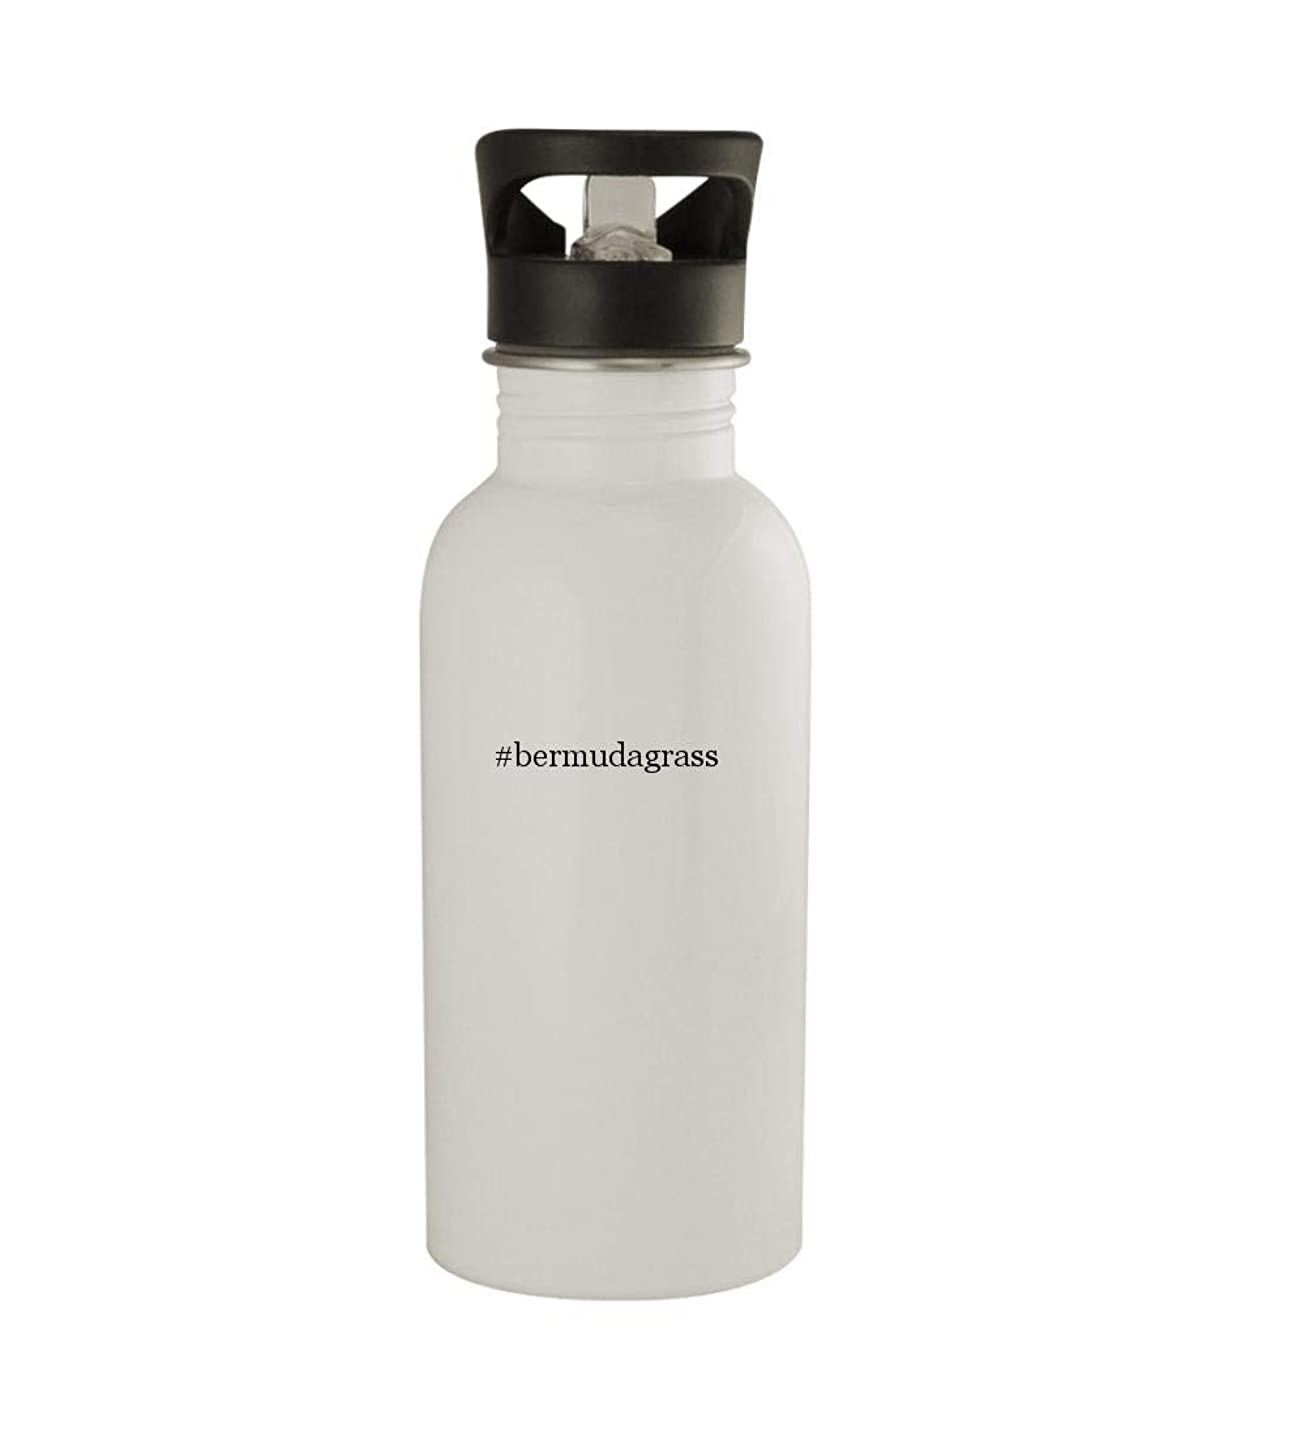 Knick Knack Gifts #Bermudagrass - 20oz Sturdy Hashtag Stainless Steel Water Bottle